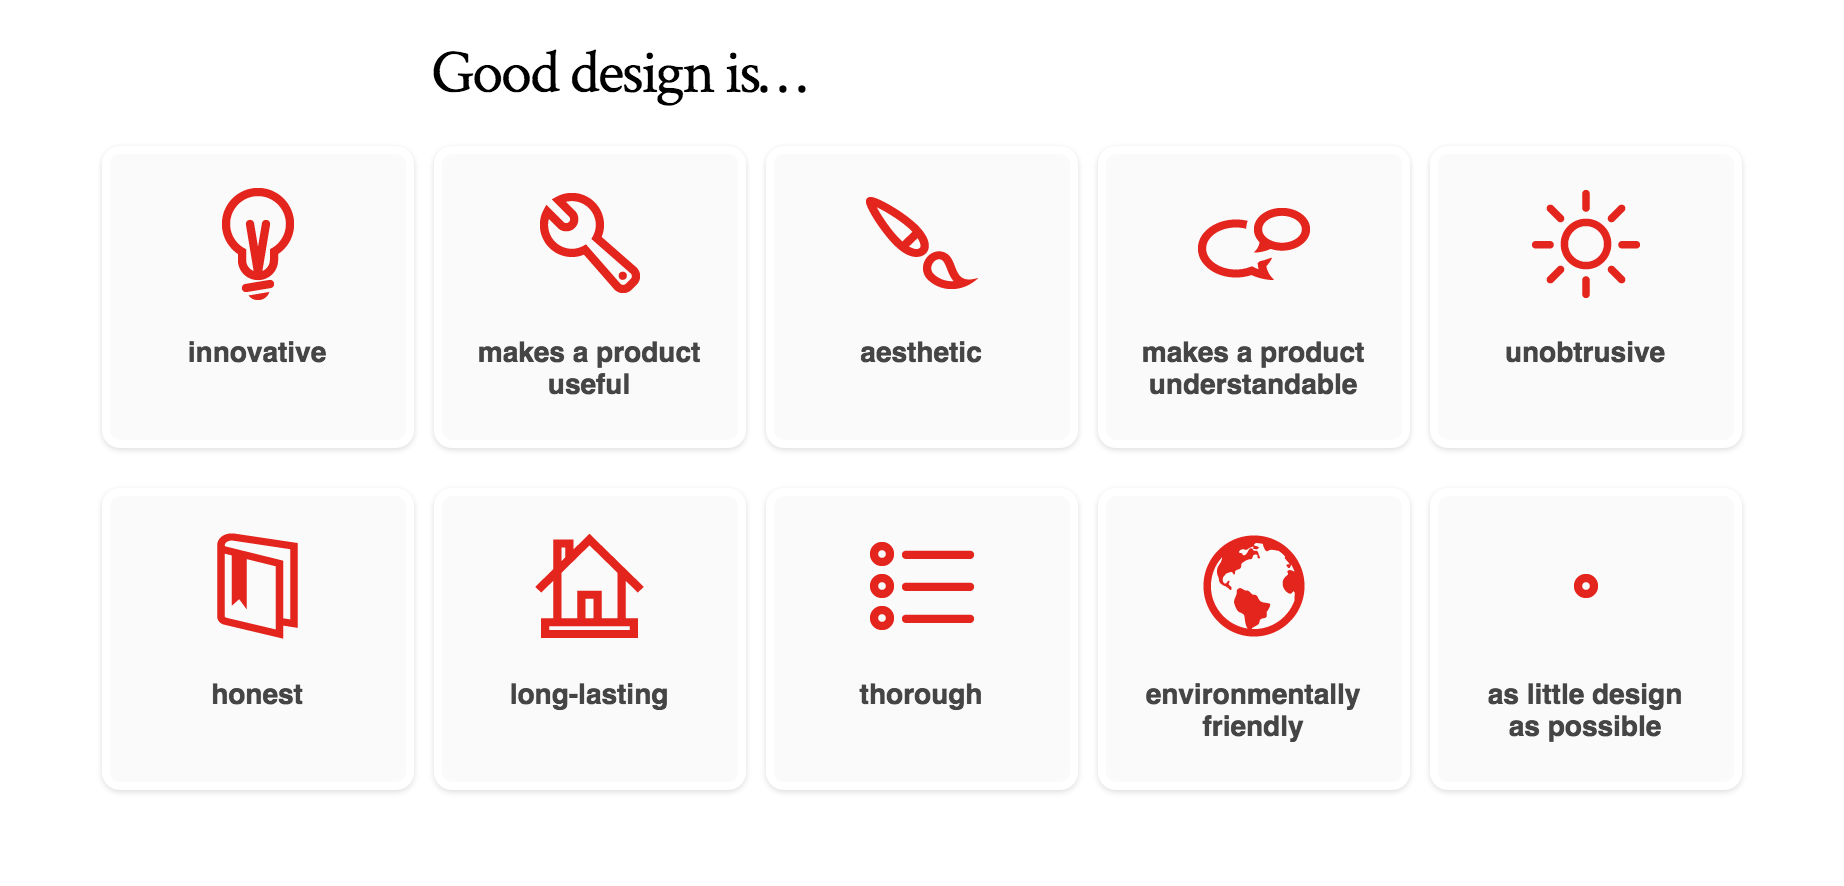 good design is